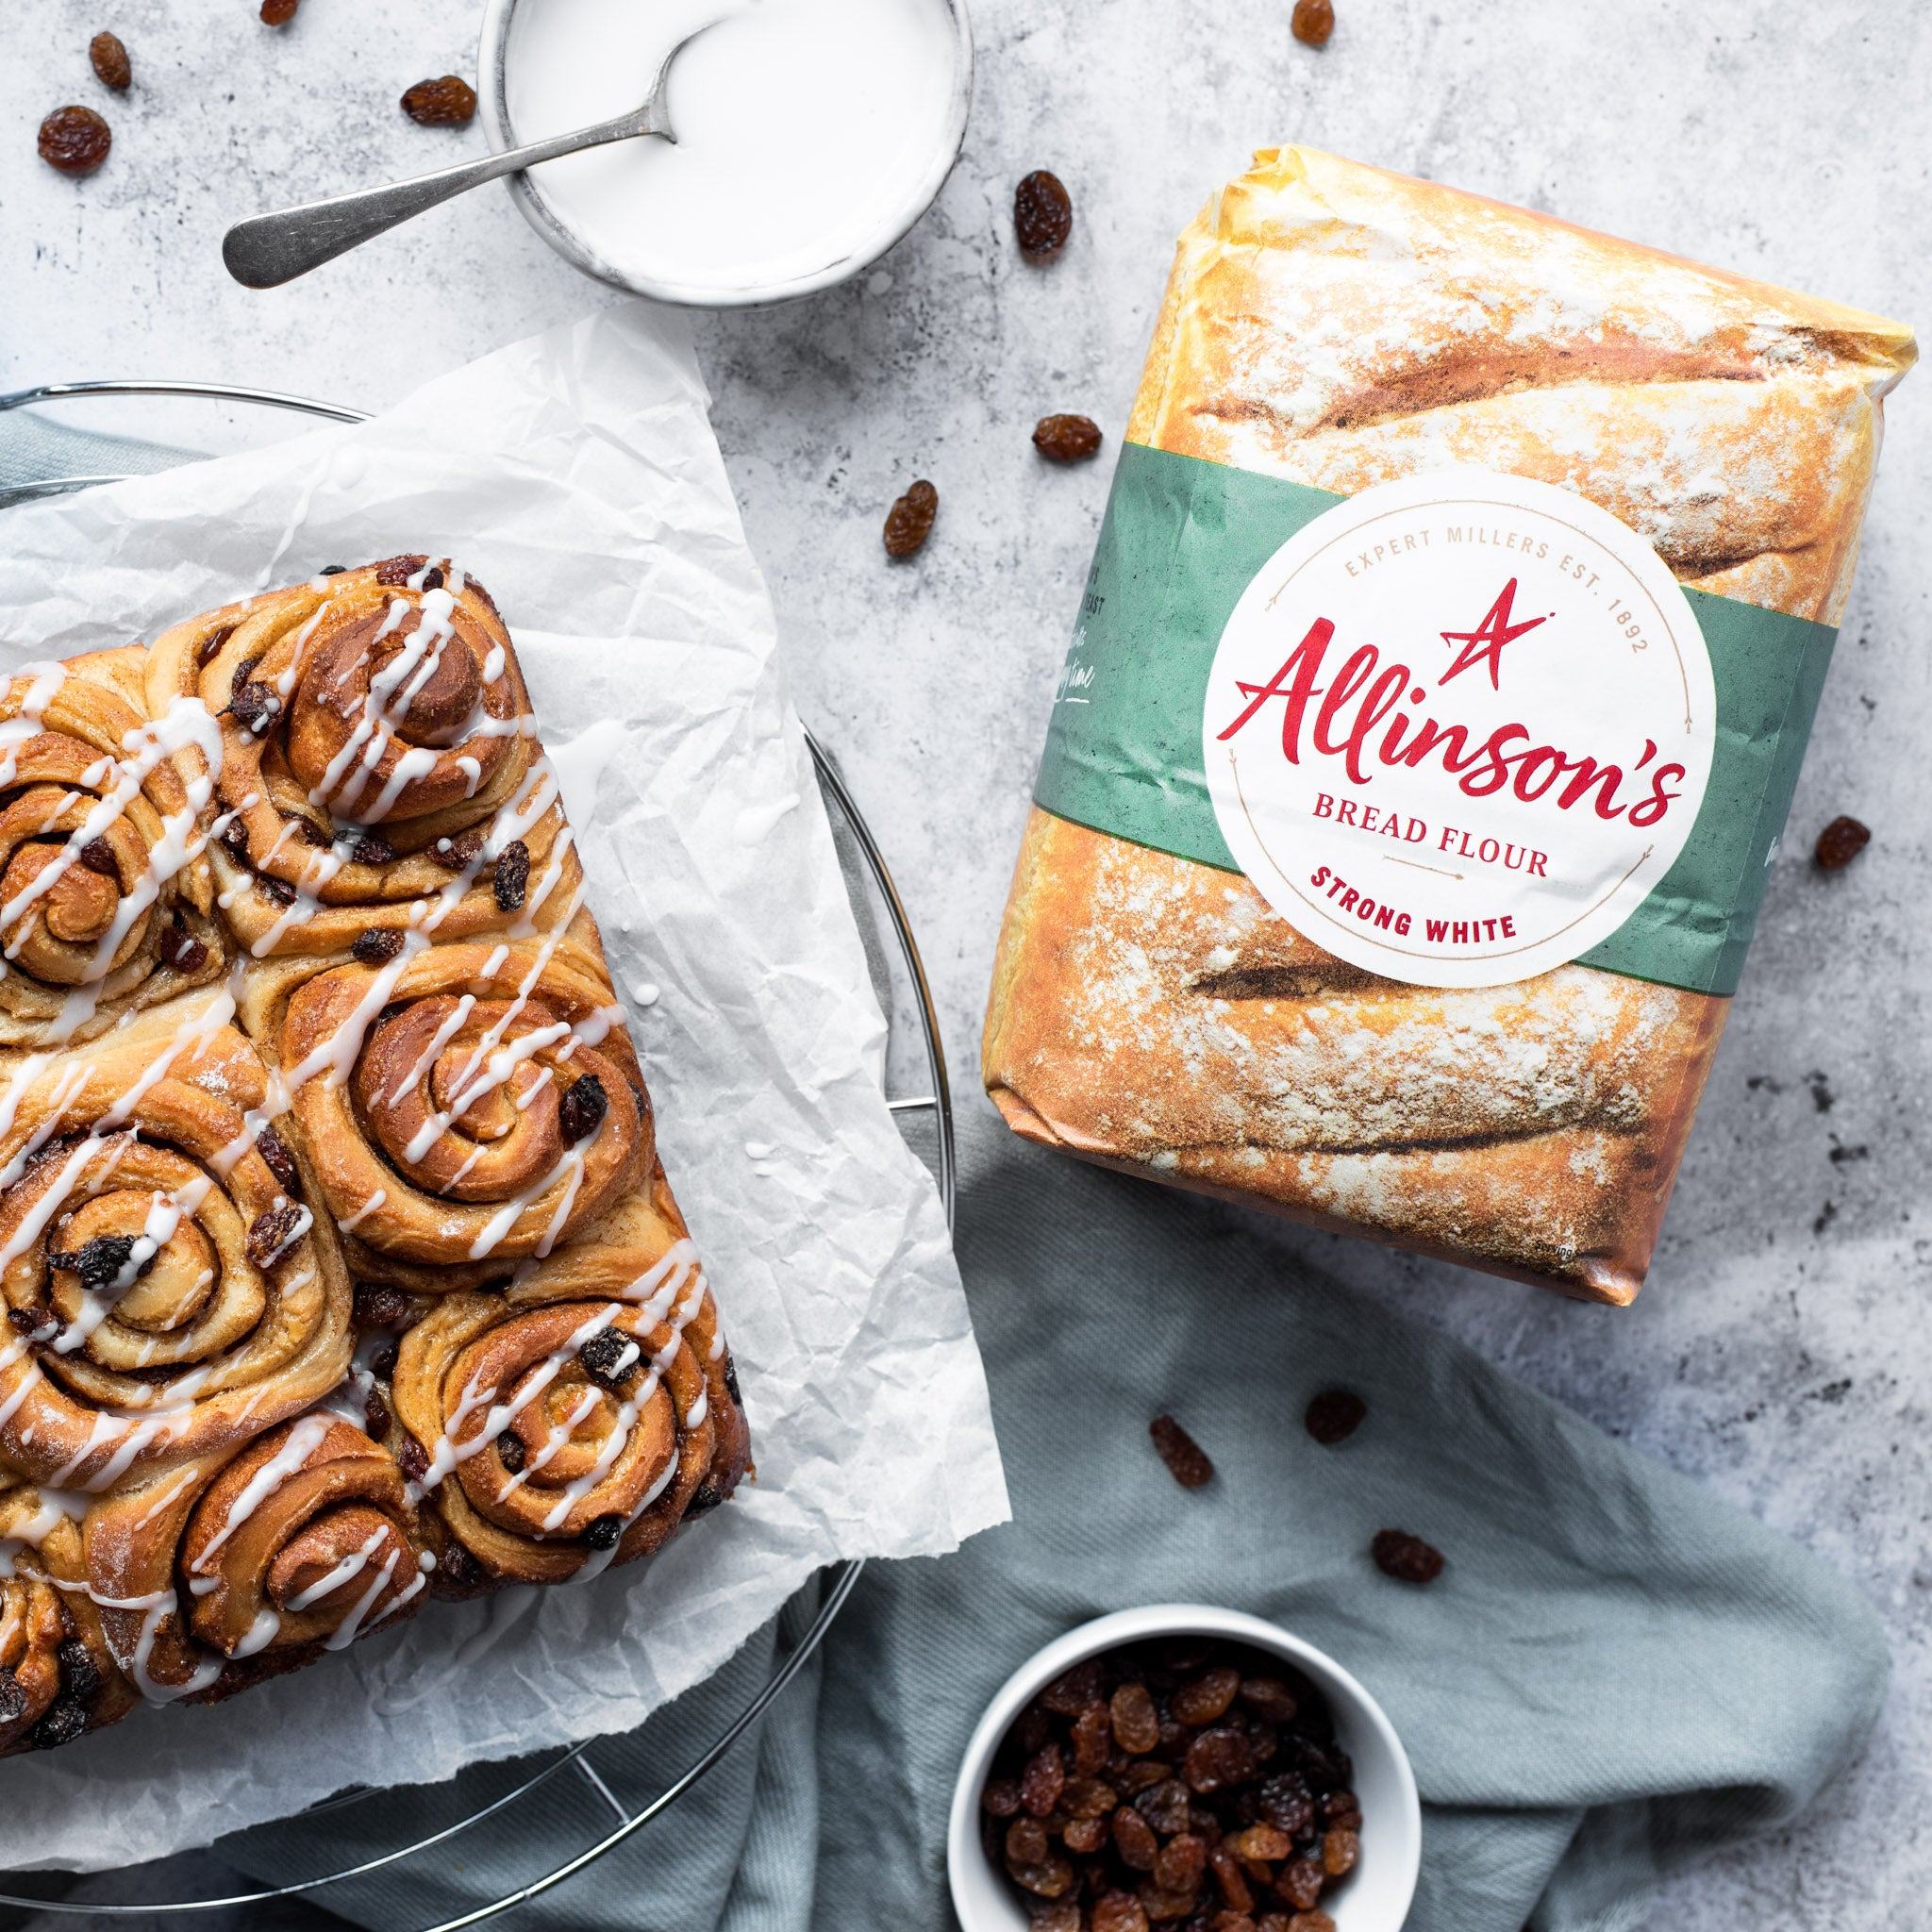 Allinsons-Chelsea-Buns-1-1-Baking-Mad-2.jpg